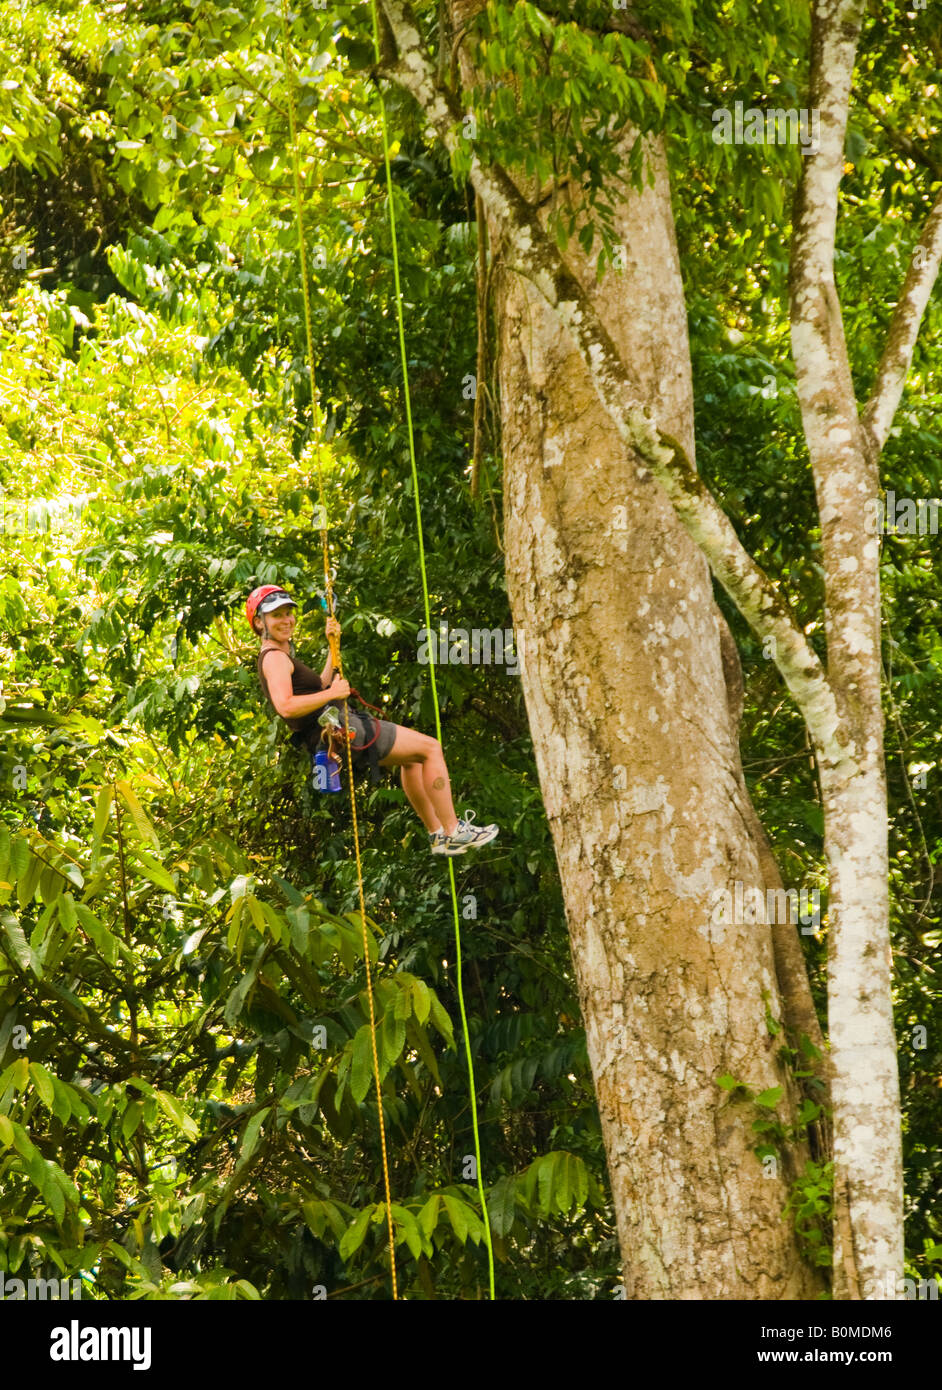 COSTA RICA  Adventuresome Woman repelling down towering jungle tree on zip line canopy tour. Pacuare River. Caribbean - Stock Image